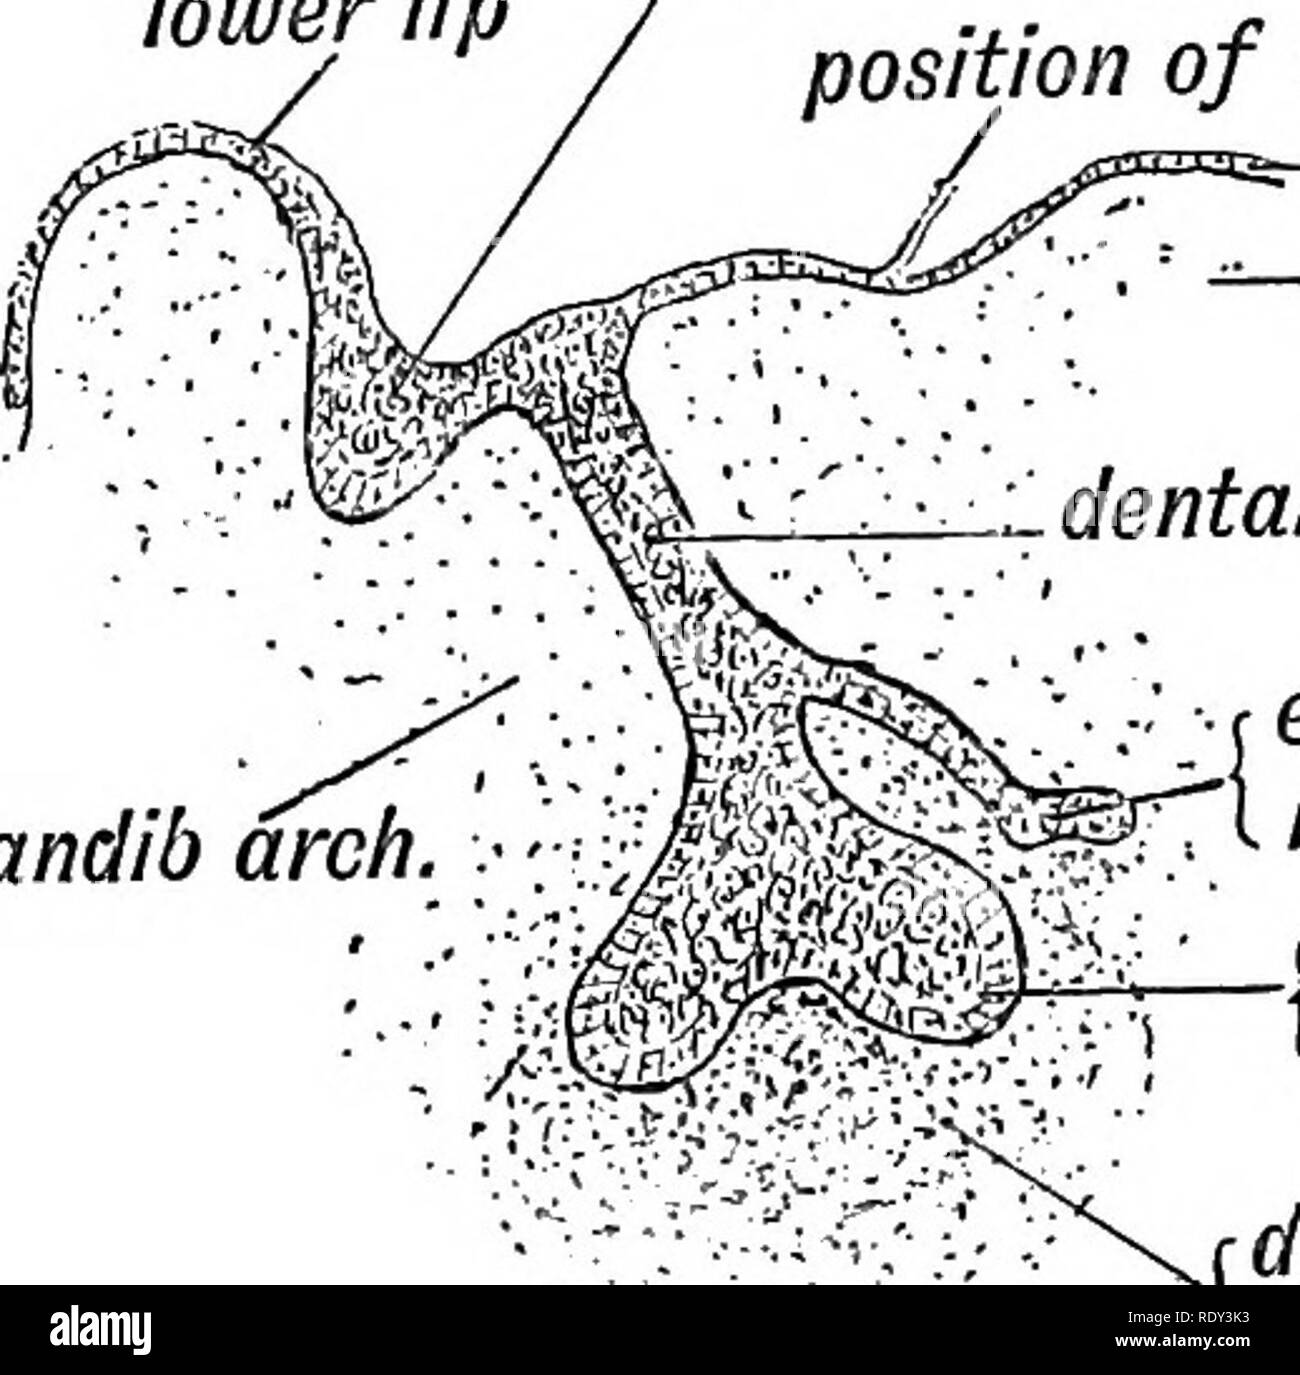 . Human embryology and morphology. Embryology, Human; Morphology. 64 HUMAN EMBRYOLOGY AND MORPHOLOGY. (1) Origin of the Enamel.—The enamel is formed by the epiblast of the stomodaeum. At the sixth week the epiblast within the labial margin grows downwards so that a narrow semicircular invagination of epithelium is formed. To the plate of epiblast thus infolded the name of dental shelf is given; its position is marked superficially by an epithelial crest—the dental lower lip labio-dental groom position of oral membrane -epiblast -tongue i dental shelf (epiblast). mandib arch Fio. r enamel bud o - Stock Image